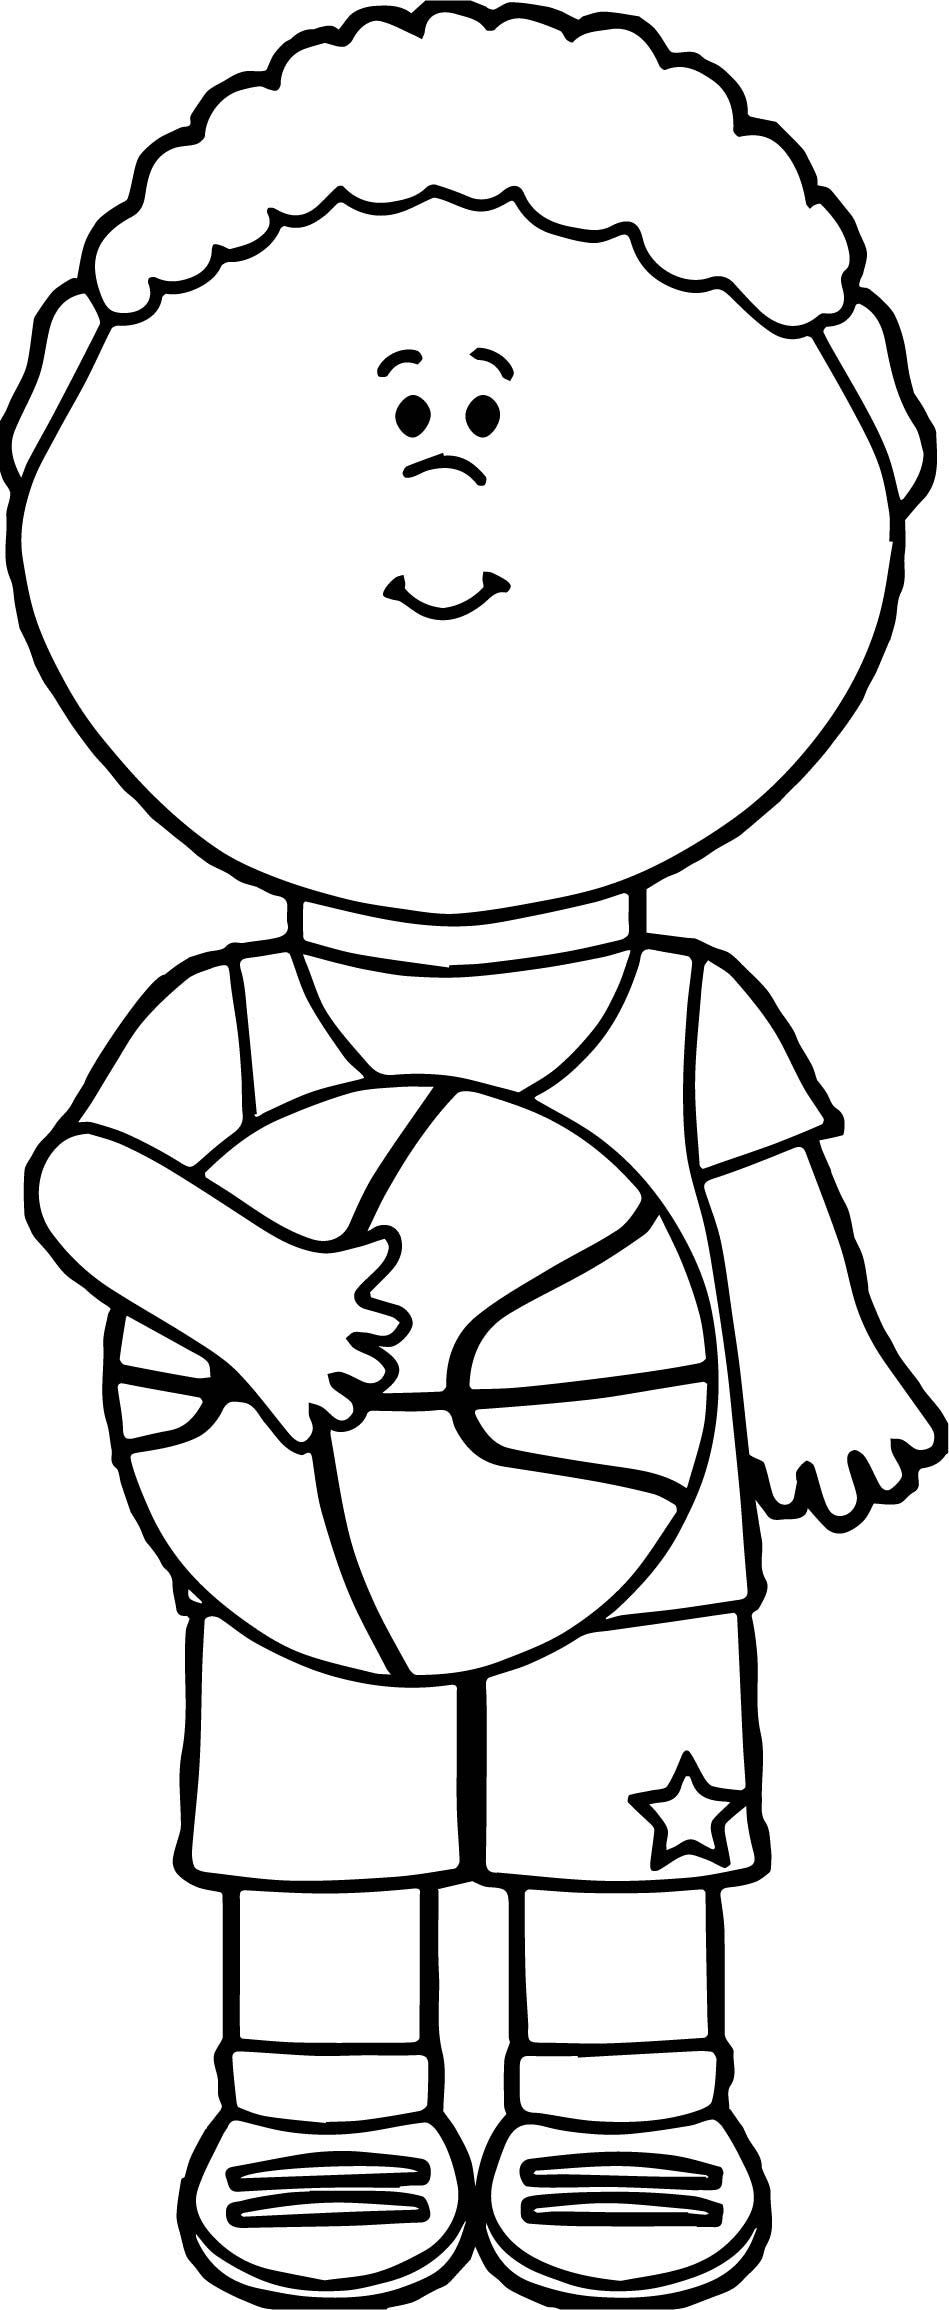 basketball player coloring pages best vector of a cartoon black